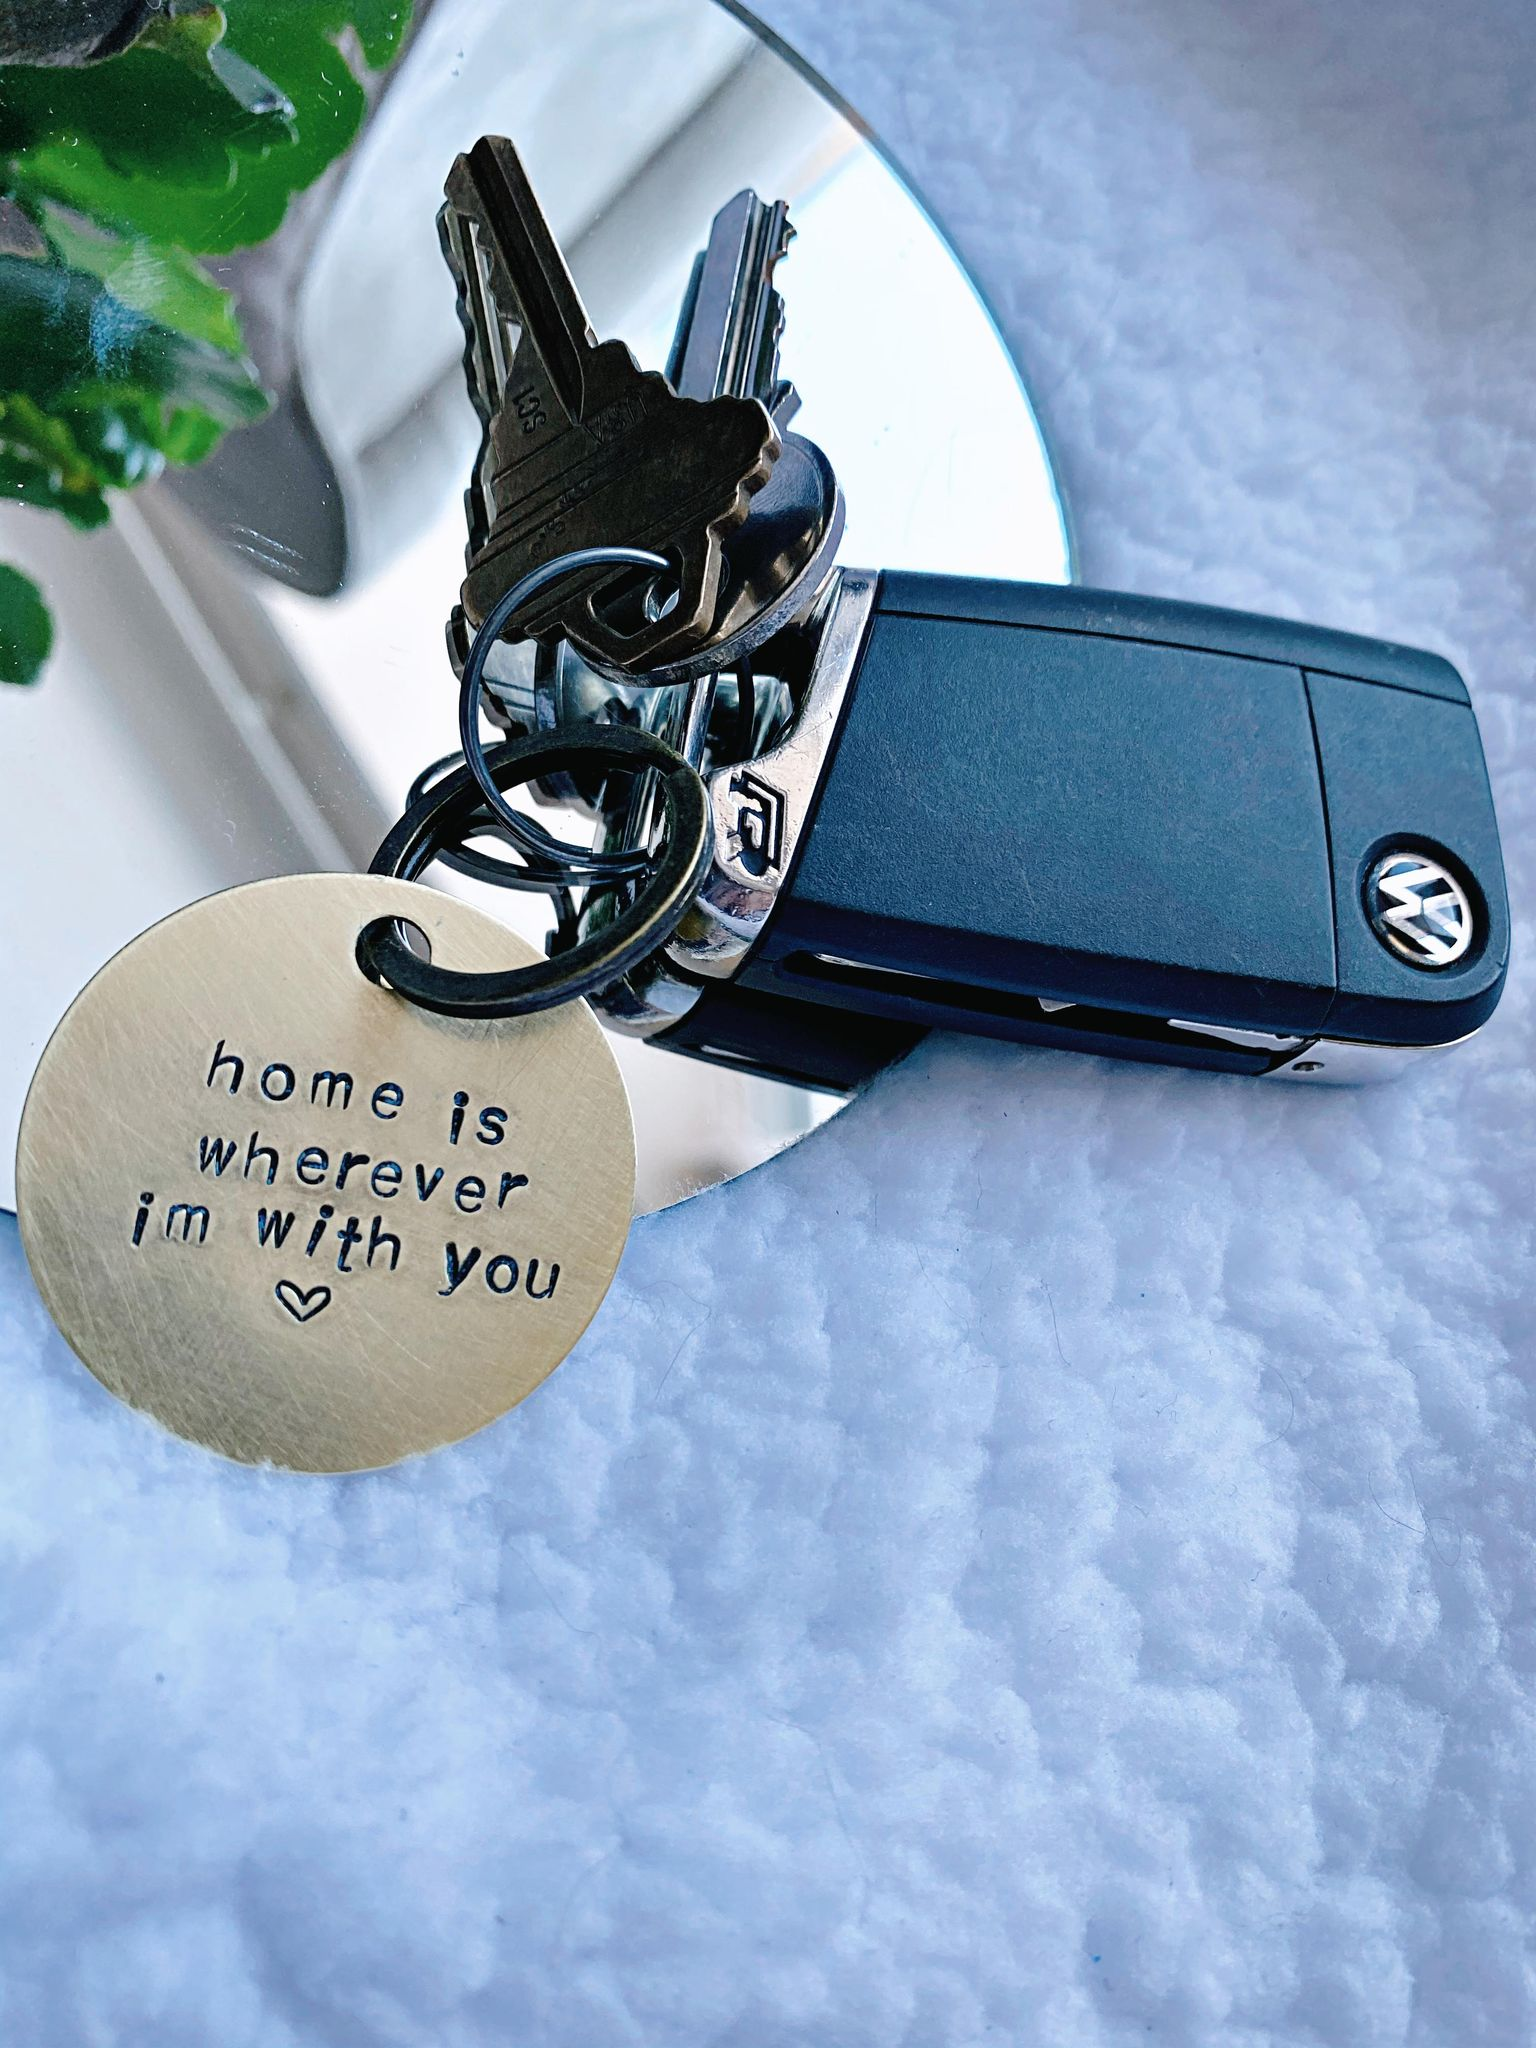 Home is wherever I'm with you - hand stamped keychain